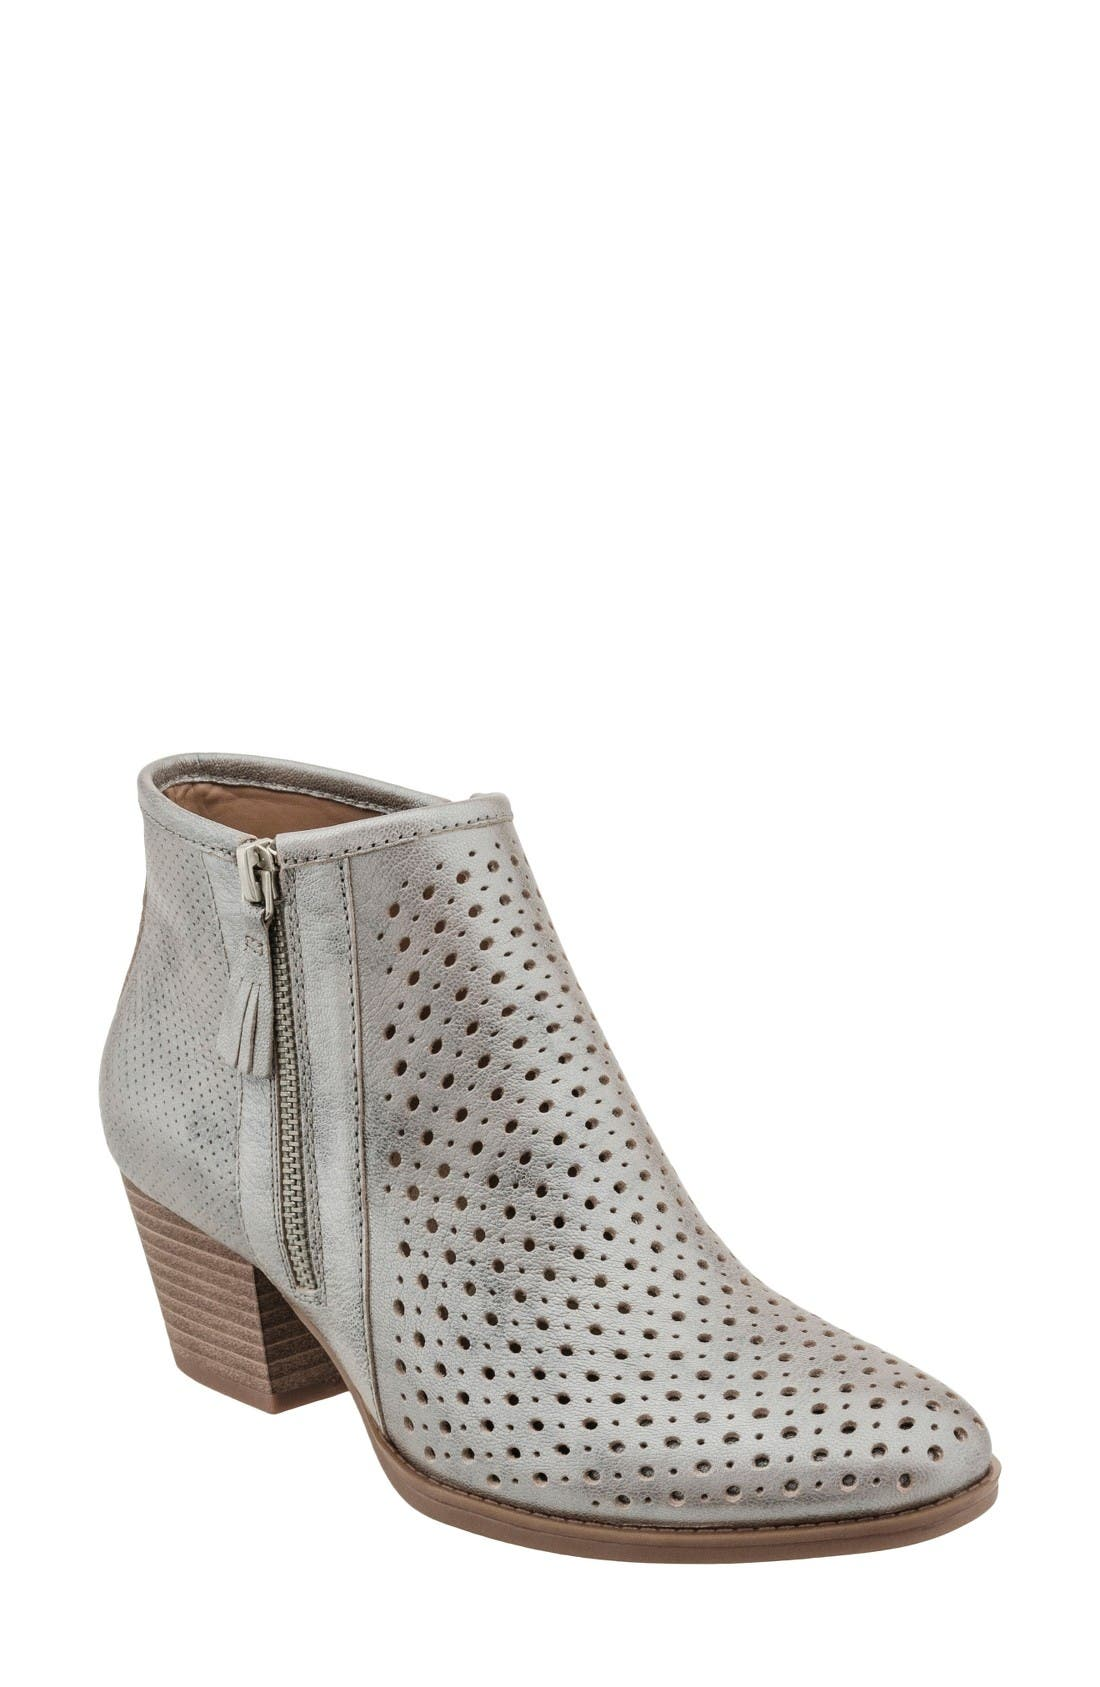 Alternate Image 1 Selected - Earth® Pineberry Bootie (Women)